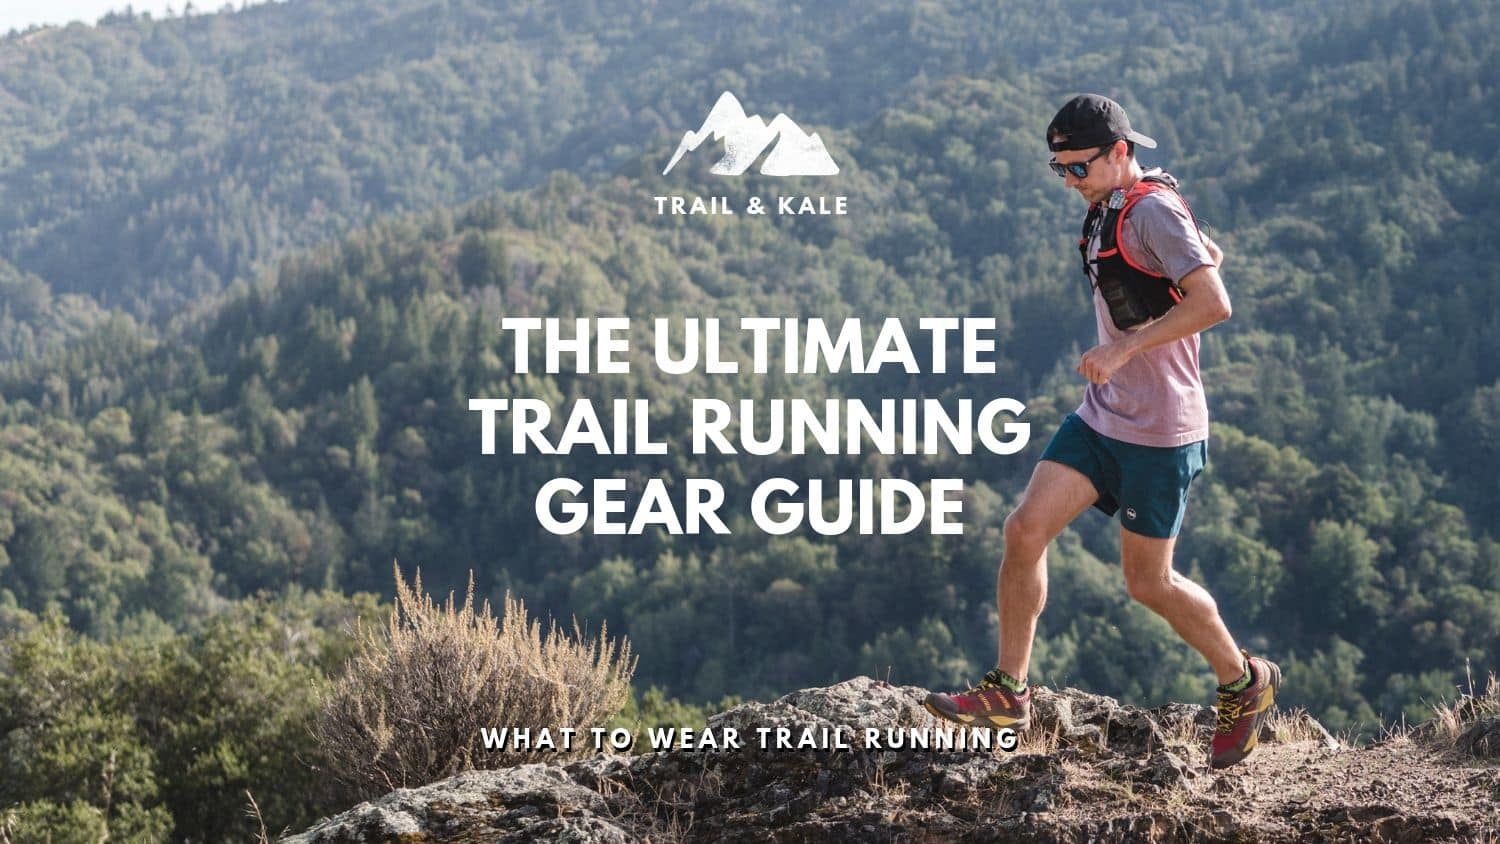 e80e83e9 The Ultimate Trail Running Gear Guide: What To Wear Trail Running